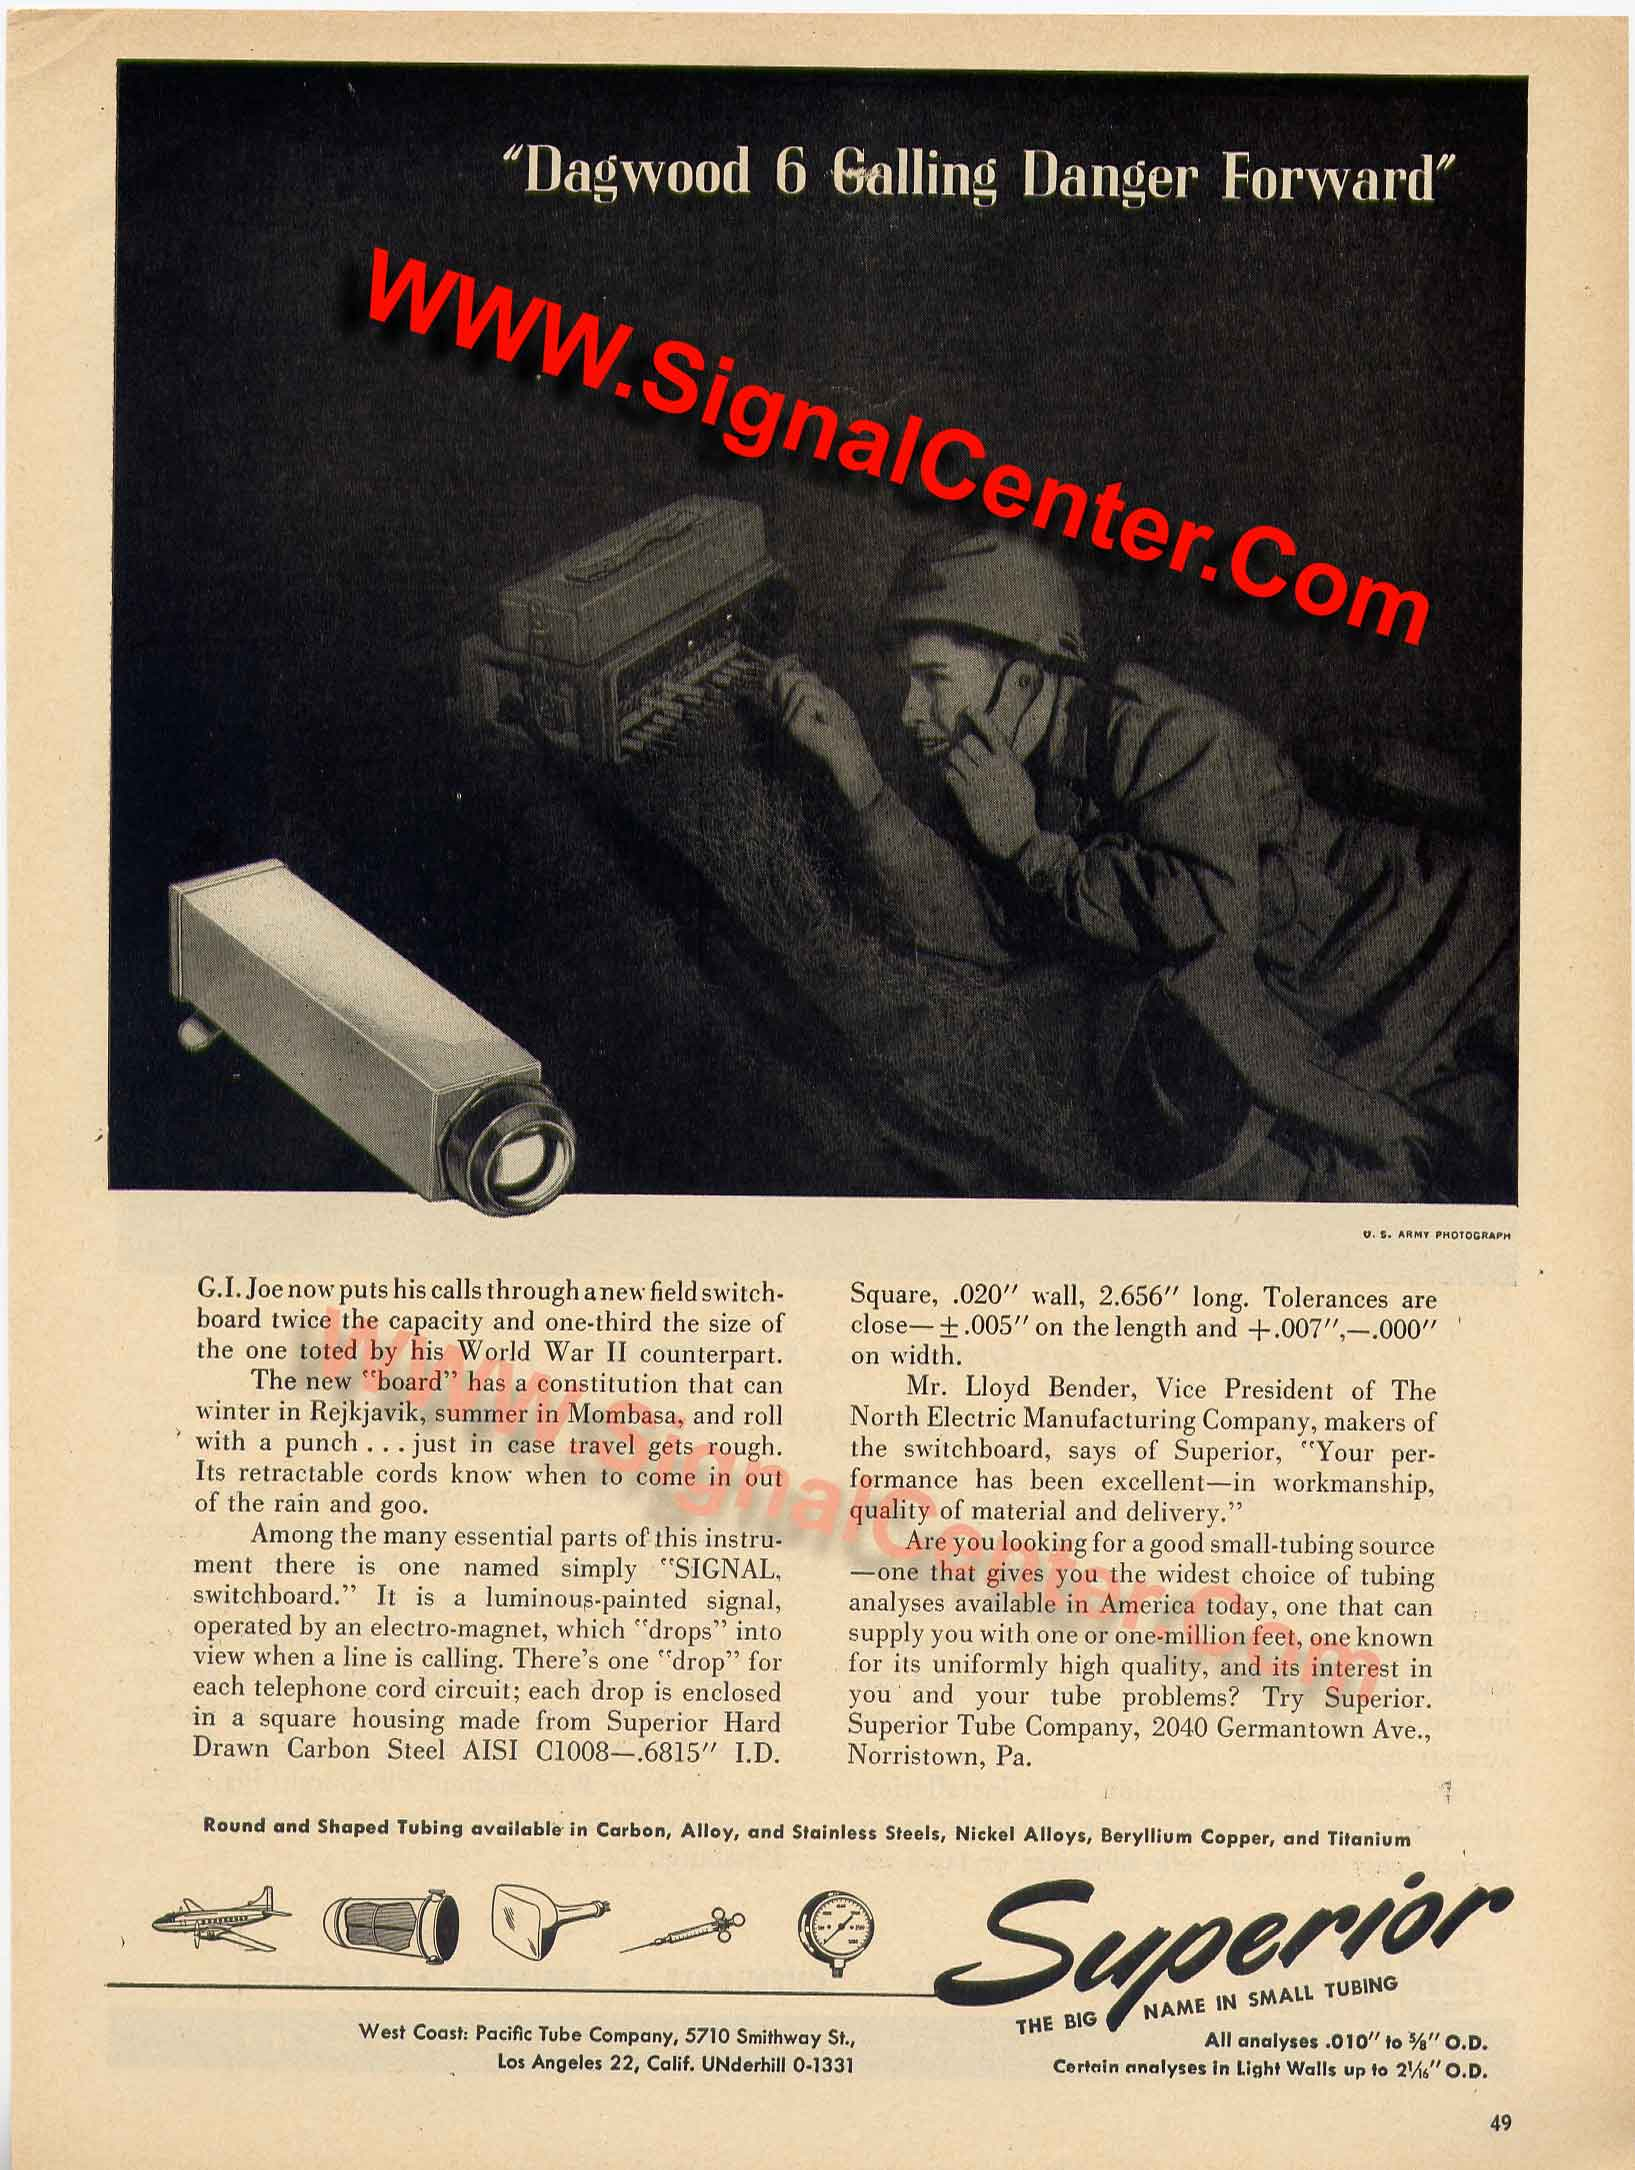 Advertisement for the SB-22/PT Switchboard Magneto Signal Drop